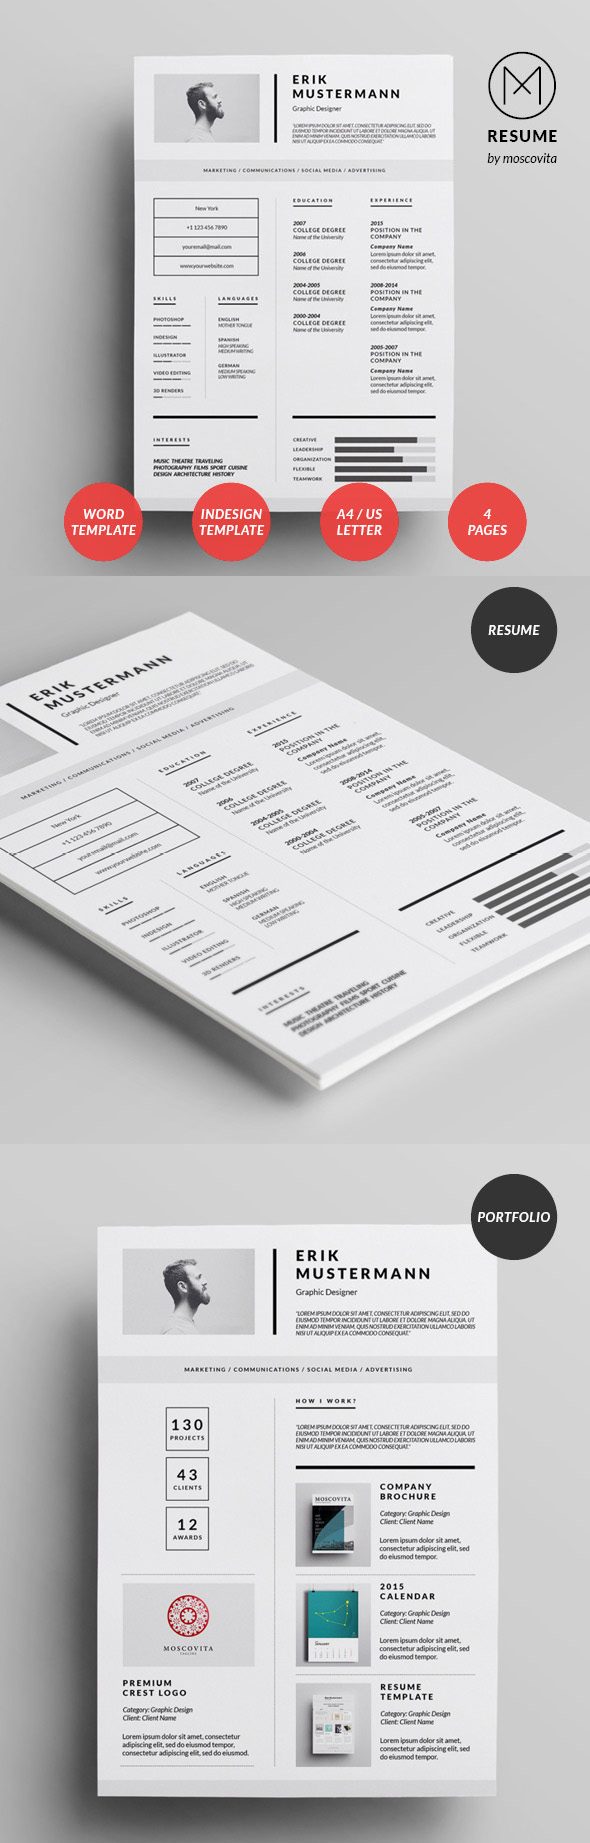 50 Best Resume Templates For 2018   32